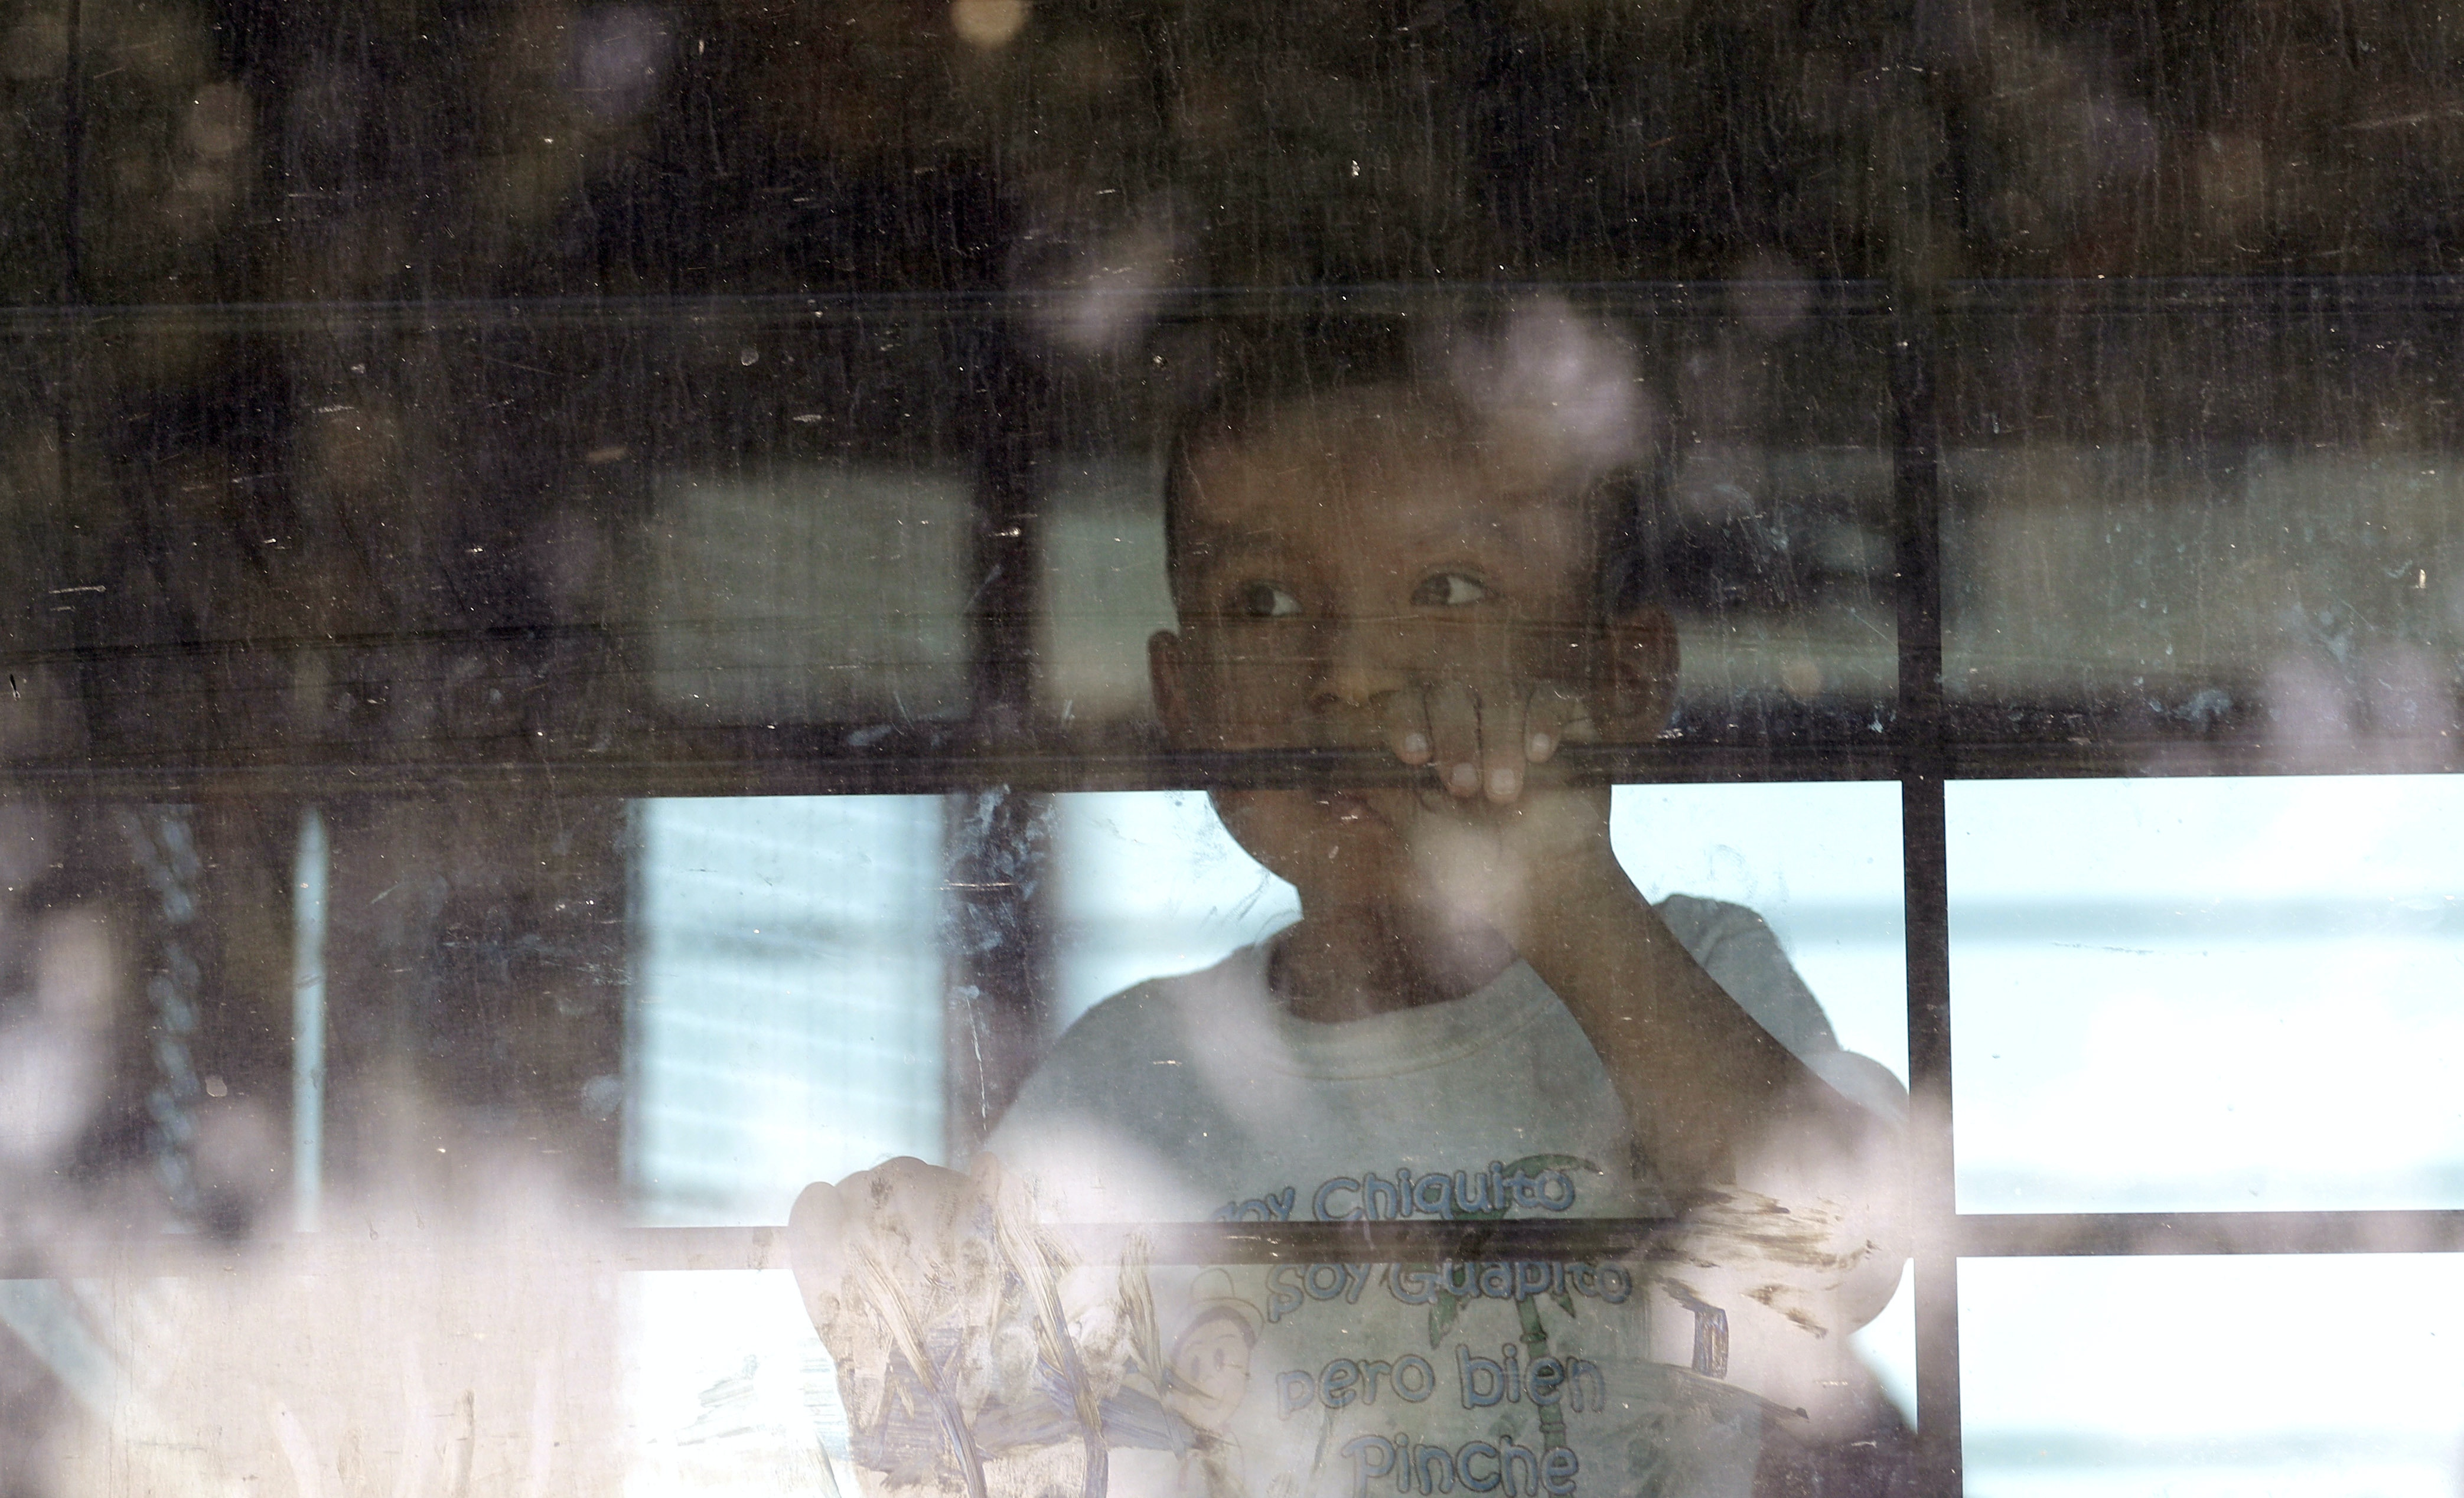 An immigrant child looks out from a U.S. Border Patrol bus as protesters block the street outside the U.S. Border Patrol Central Processing Center Saturday, June 23, 2018, in McAllen, Texas. Additional law enforcement officials were called in to help control the crowd and allow the bus to move. (AP Photo/David J. Phillip)